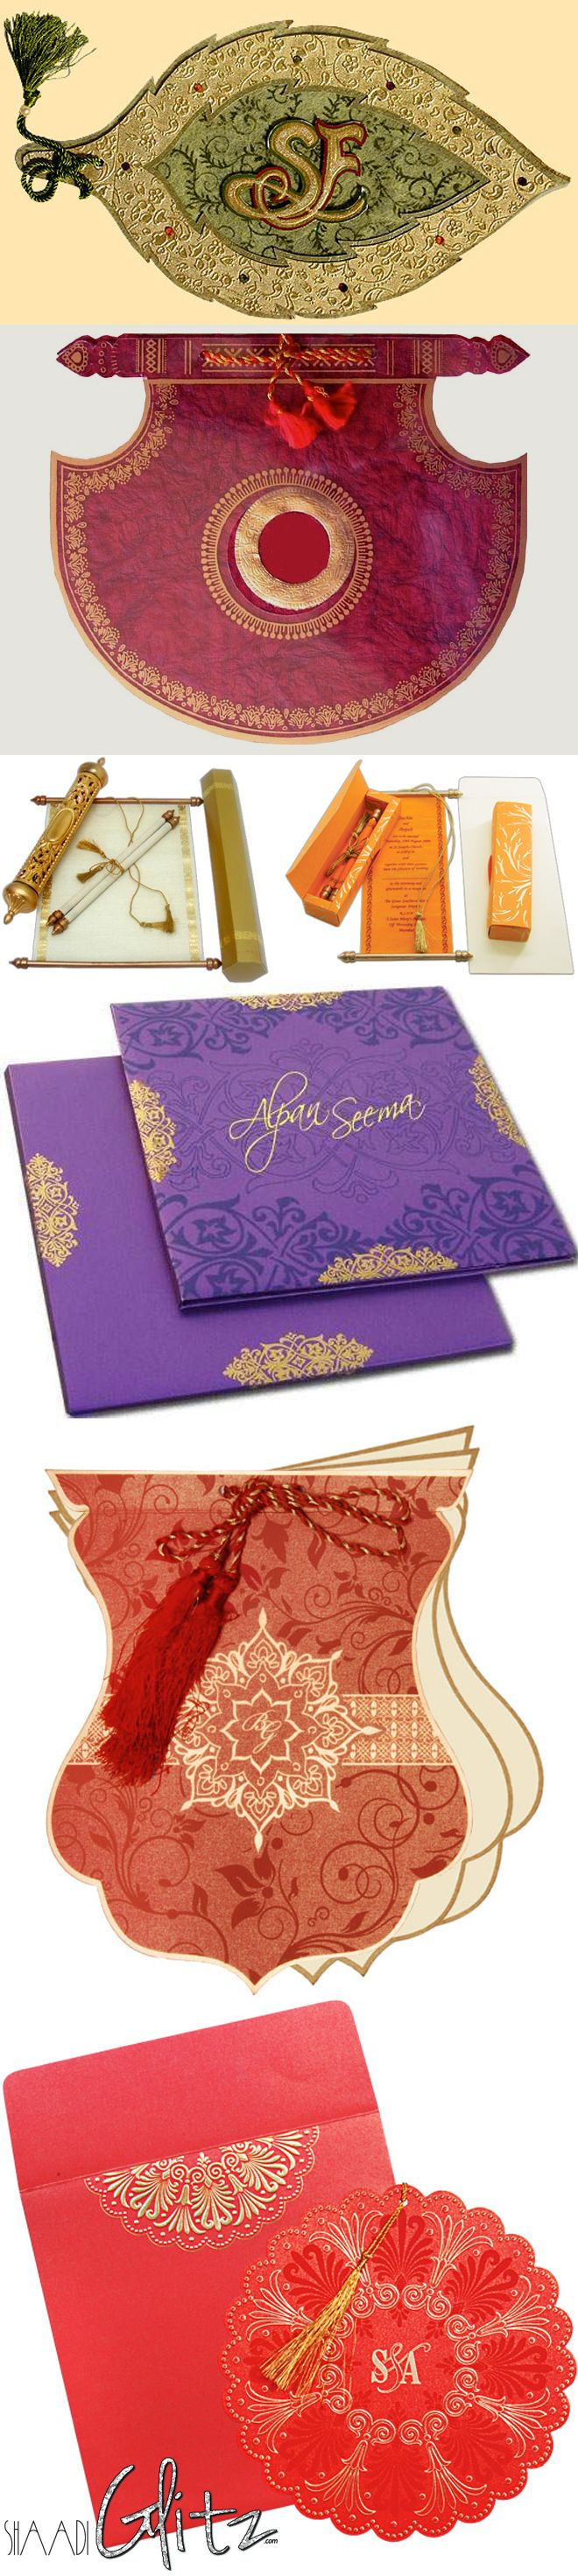 83 best Invites/Indian Weds images on Pinterest | Indian wedding ...